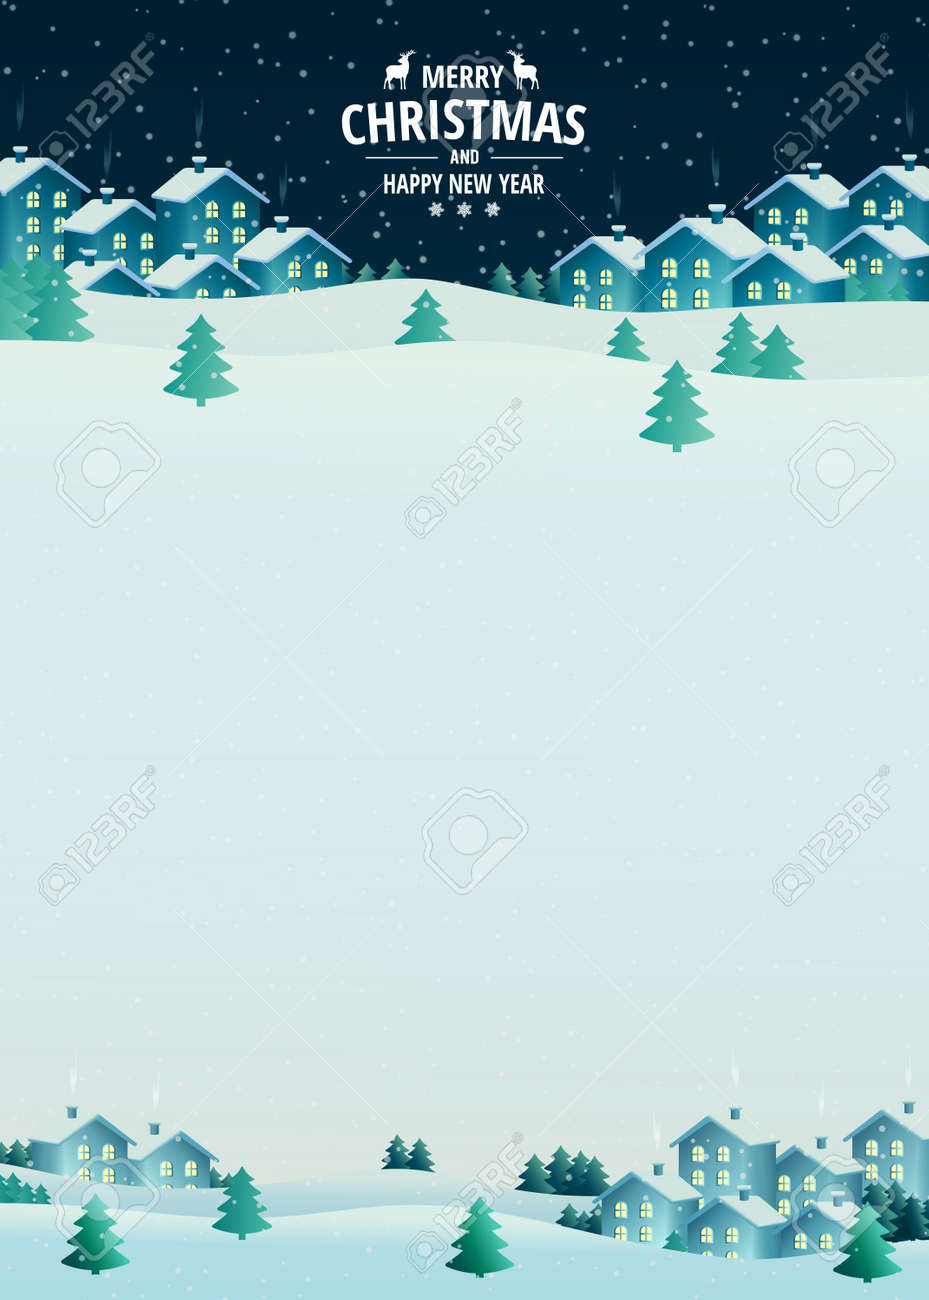 Vector Illustration On The Theme Of Christmas And New Year Christmas